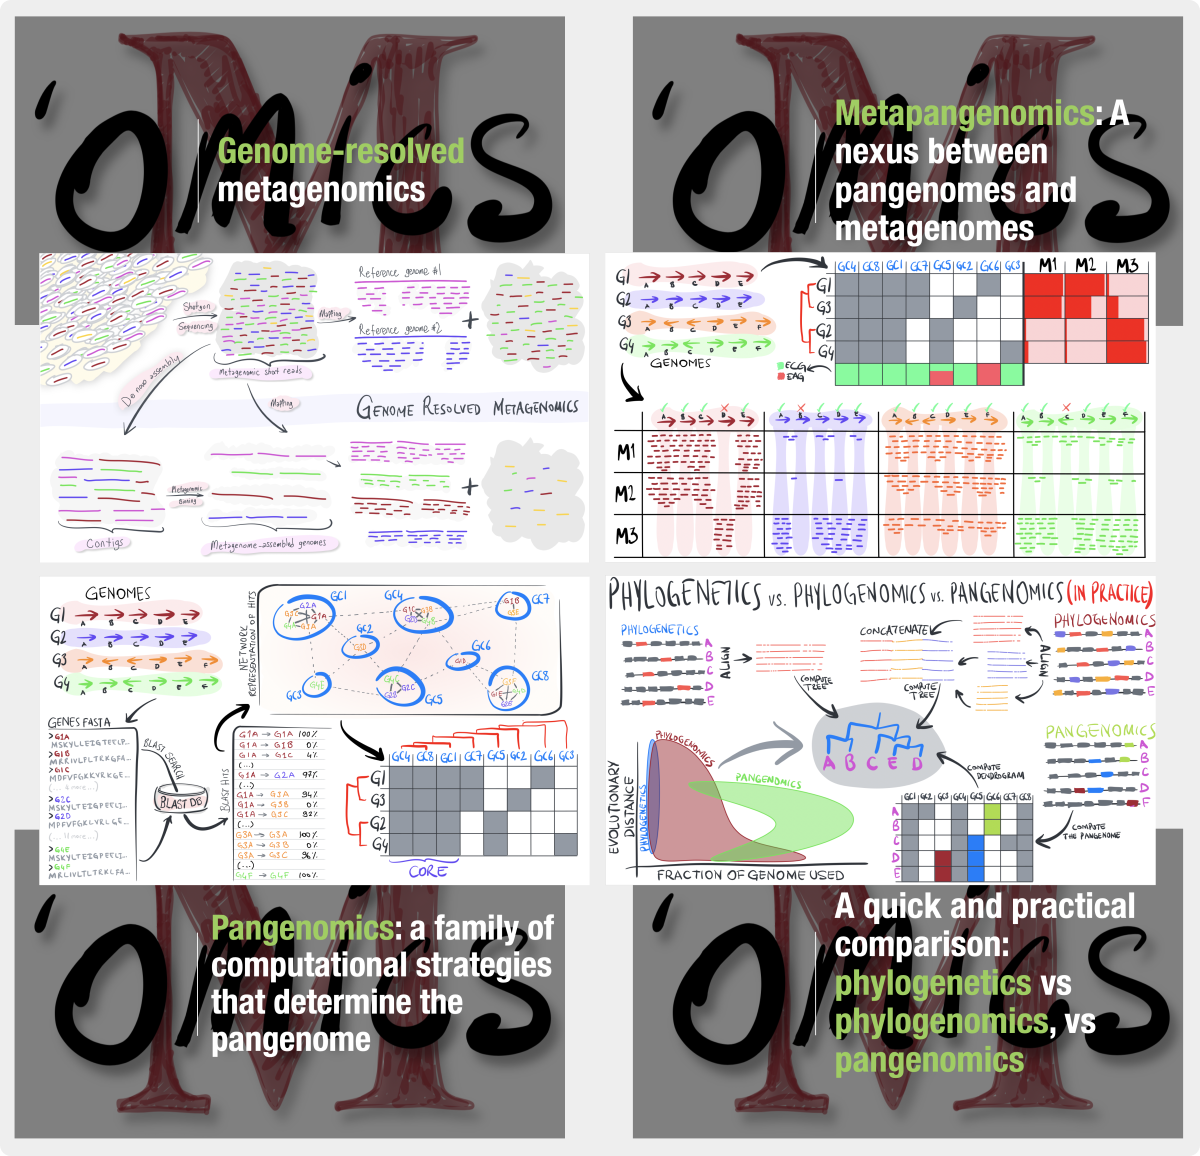 Microbial 'Omics: An introduction – Meren Lab